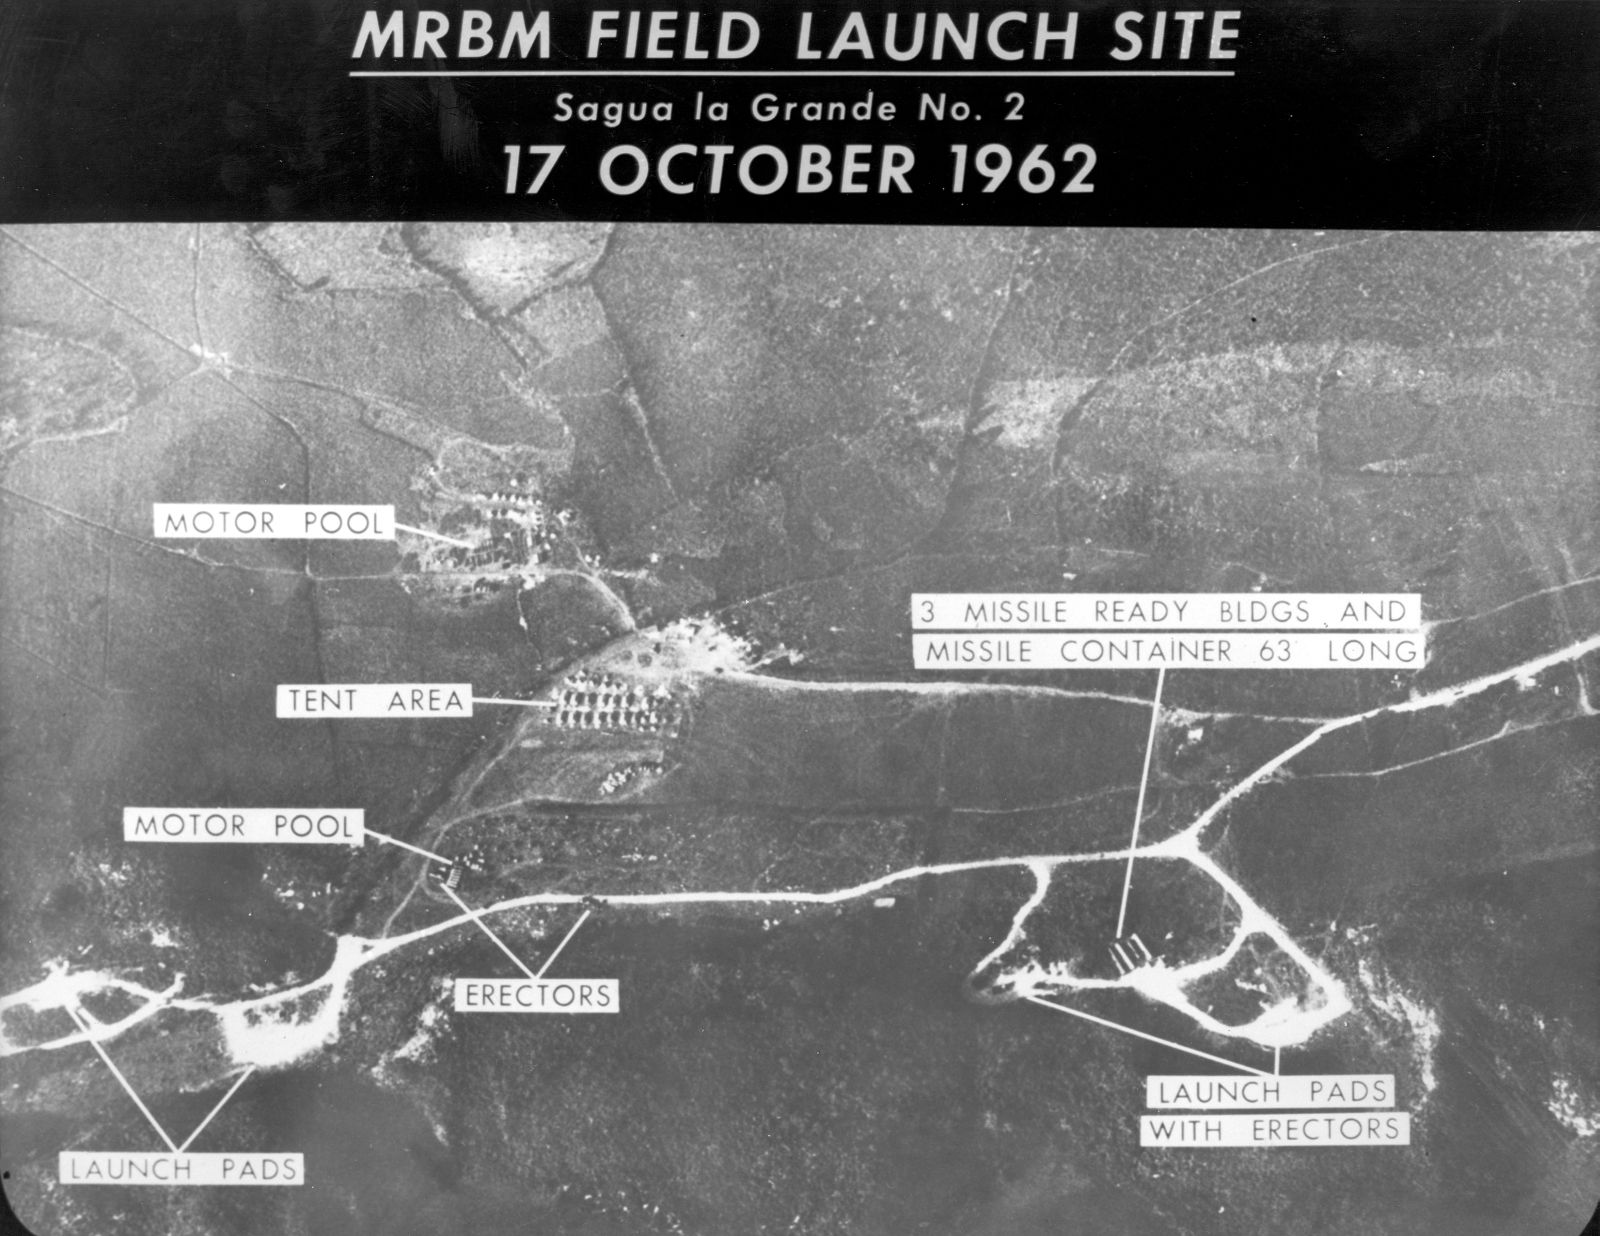 Cuban Missile Crisis-MRBM Field Launch Site